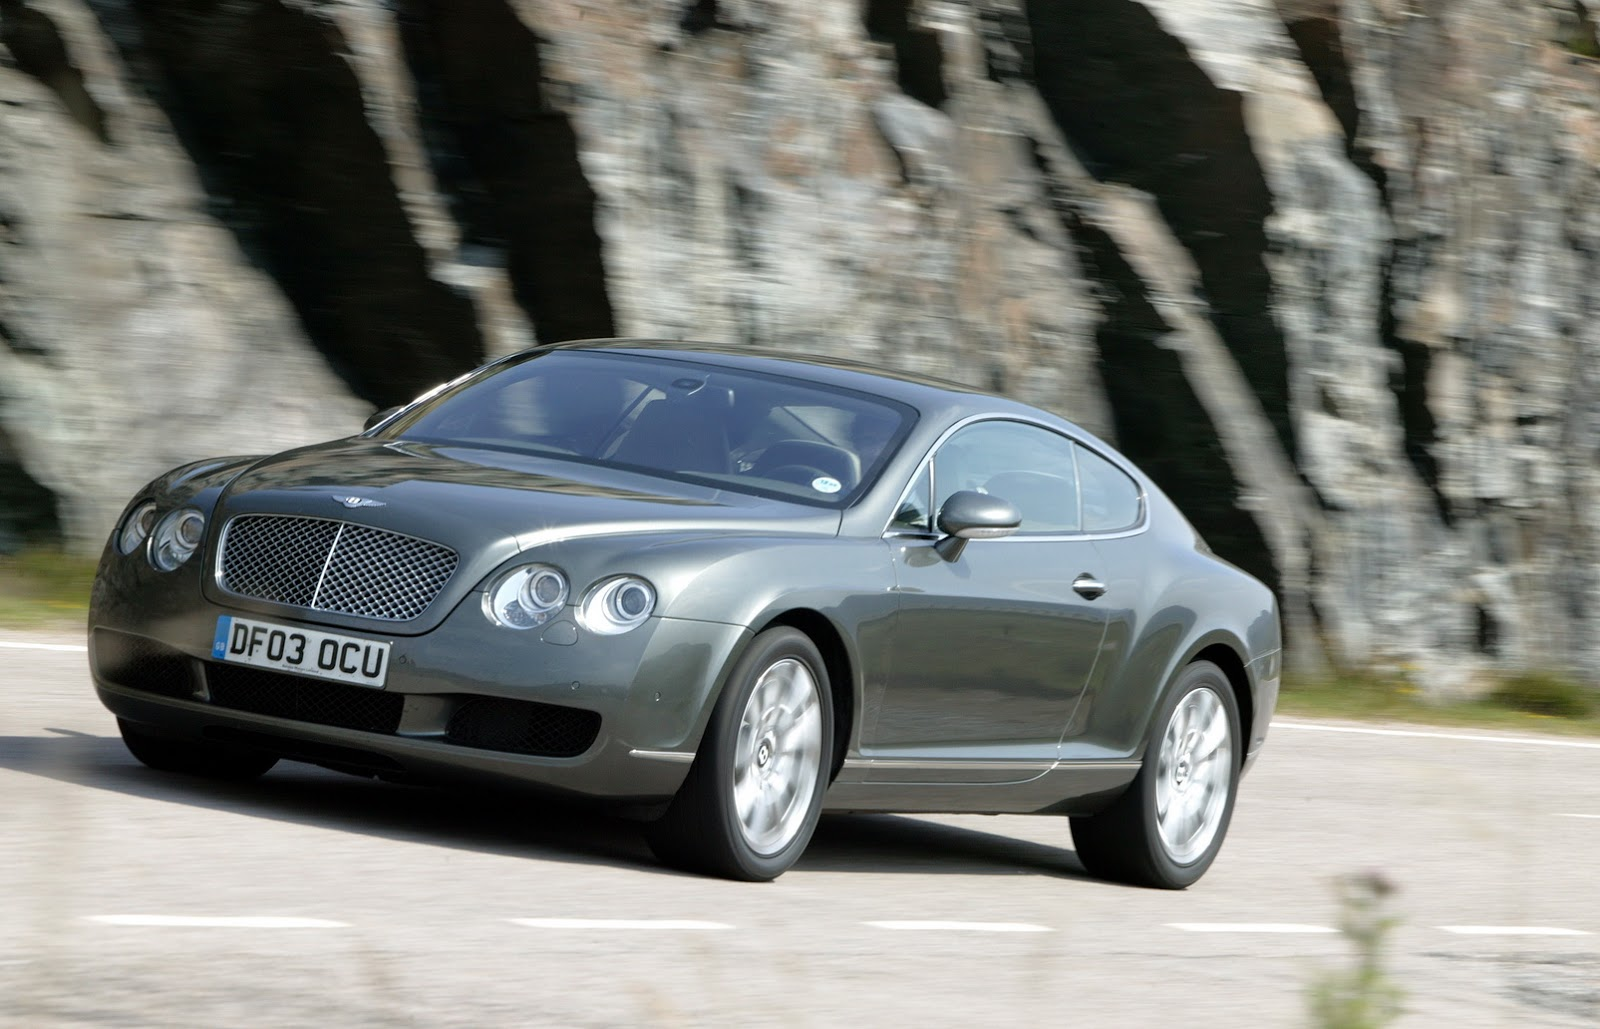 Bentley Pre Owned For Sale 25 Background Wallpaper Car Hd Wallpaper